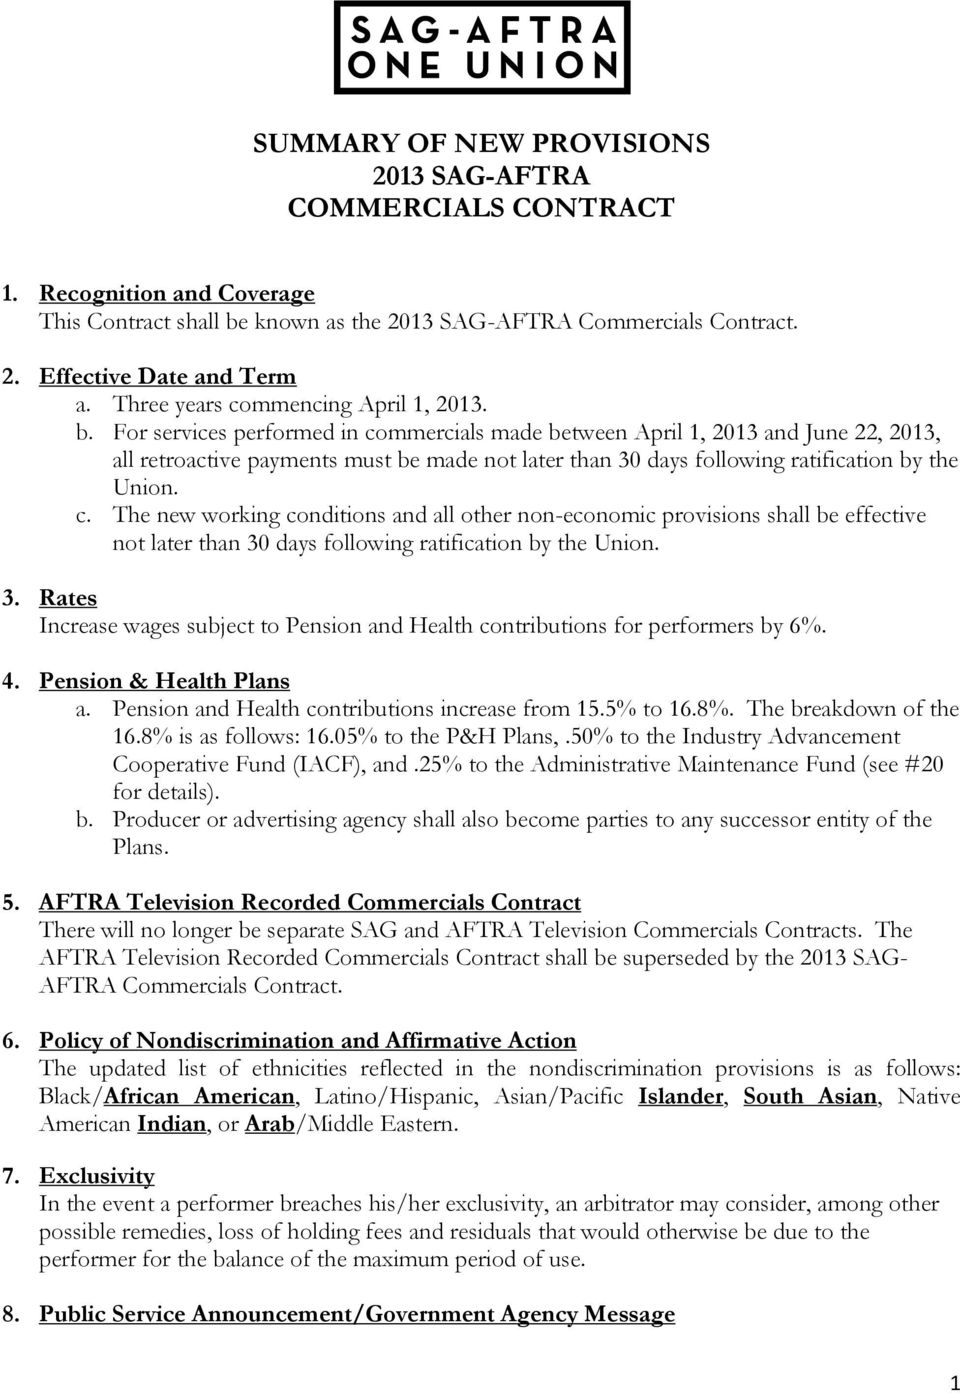 SUMMARY OF NEW PROVISIONS 2013 SAG-AFTRA COMMERCIALS